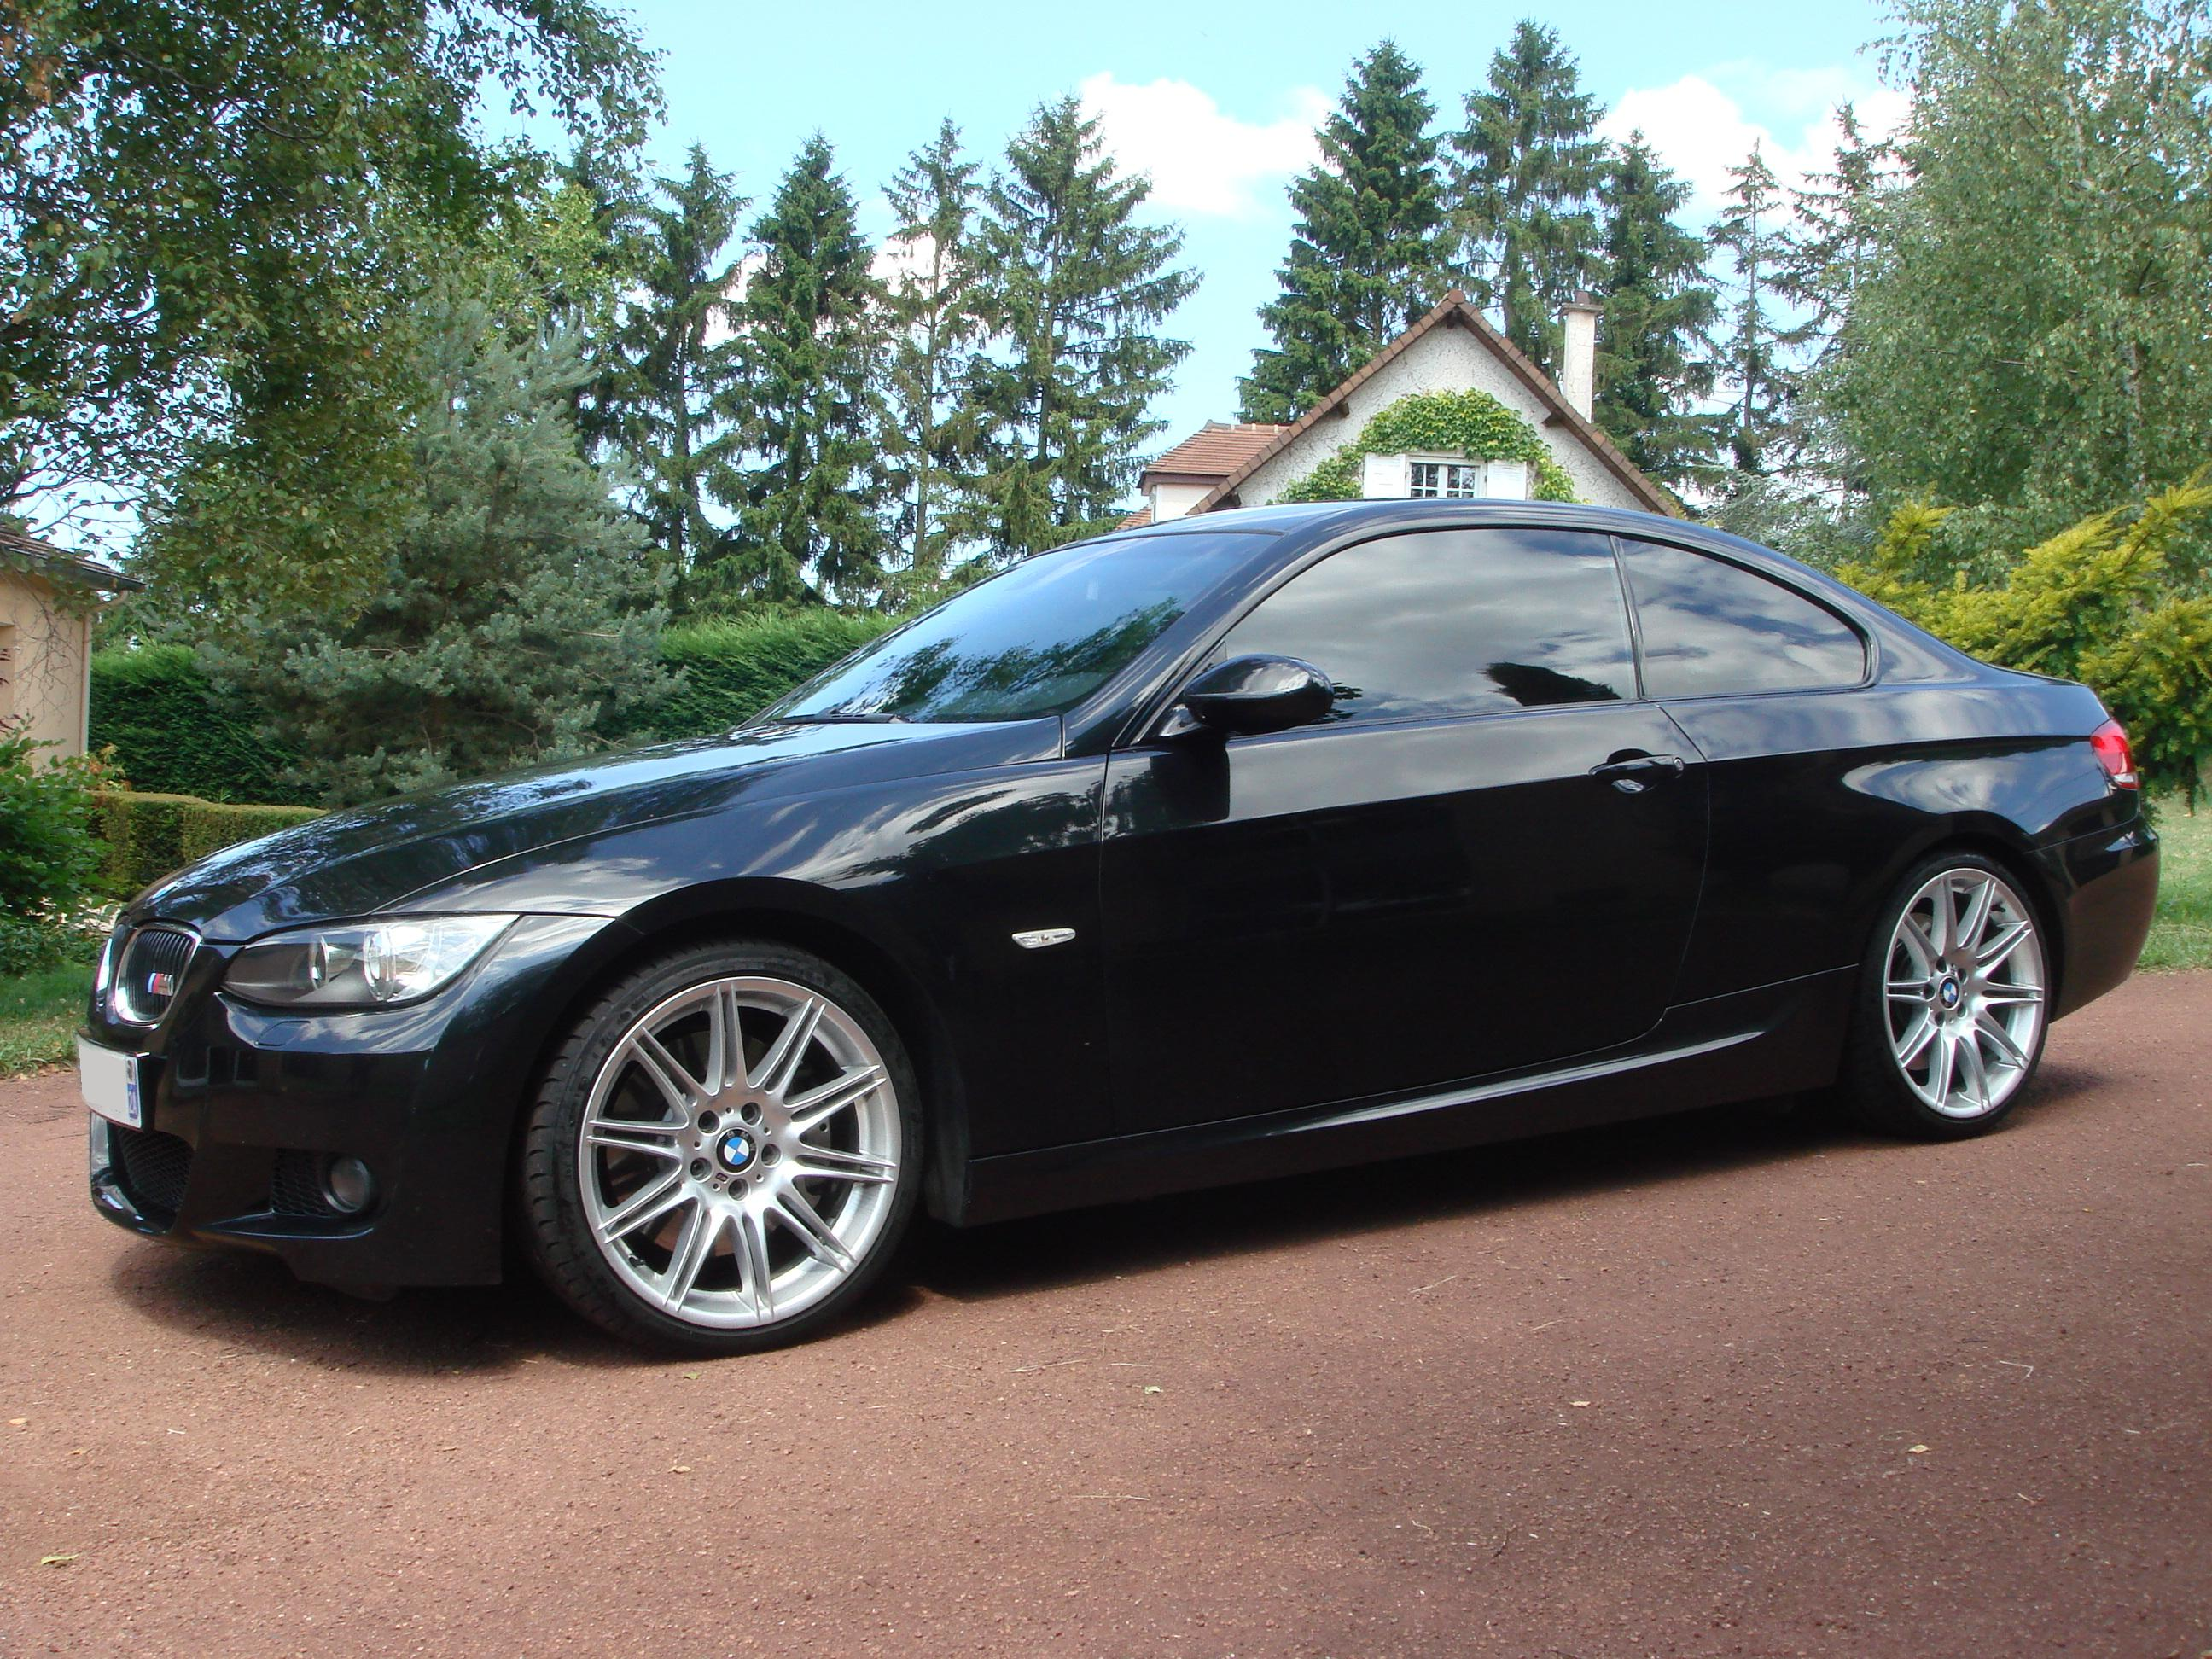 Hilaire garage bmw s rie 3 330d coupe gps xenon for Garage bmw bayonne occasion